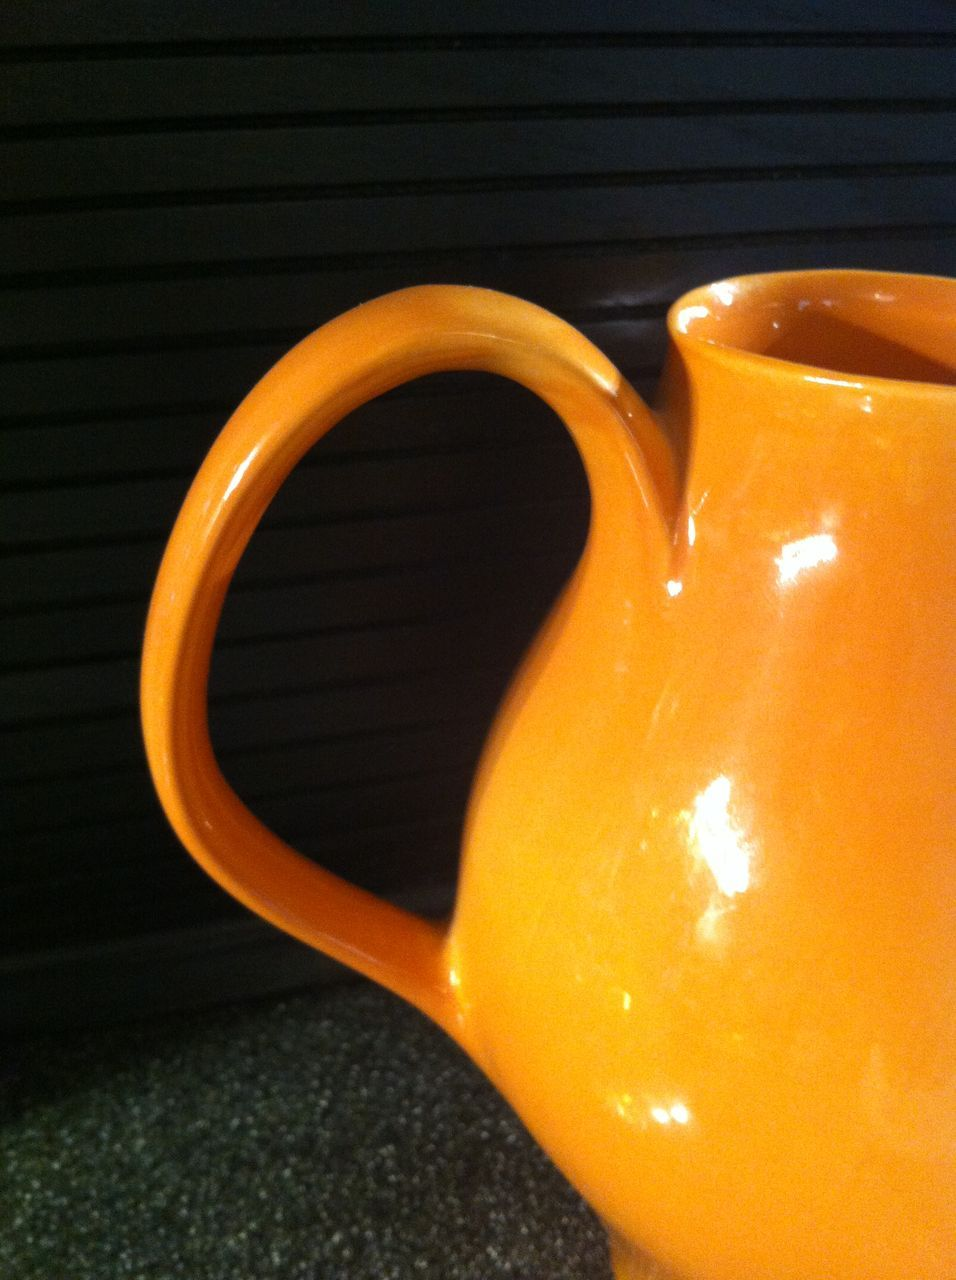 Cantaloupe russel wright iroquois redesigned water pitcher from eraofmyways on ruby lane - Russel wright pitcher ...